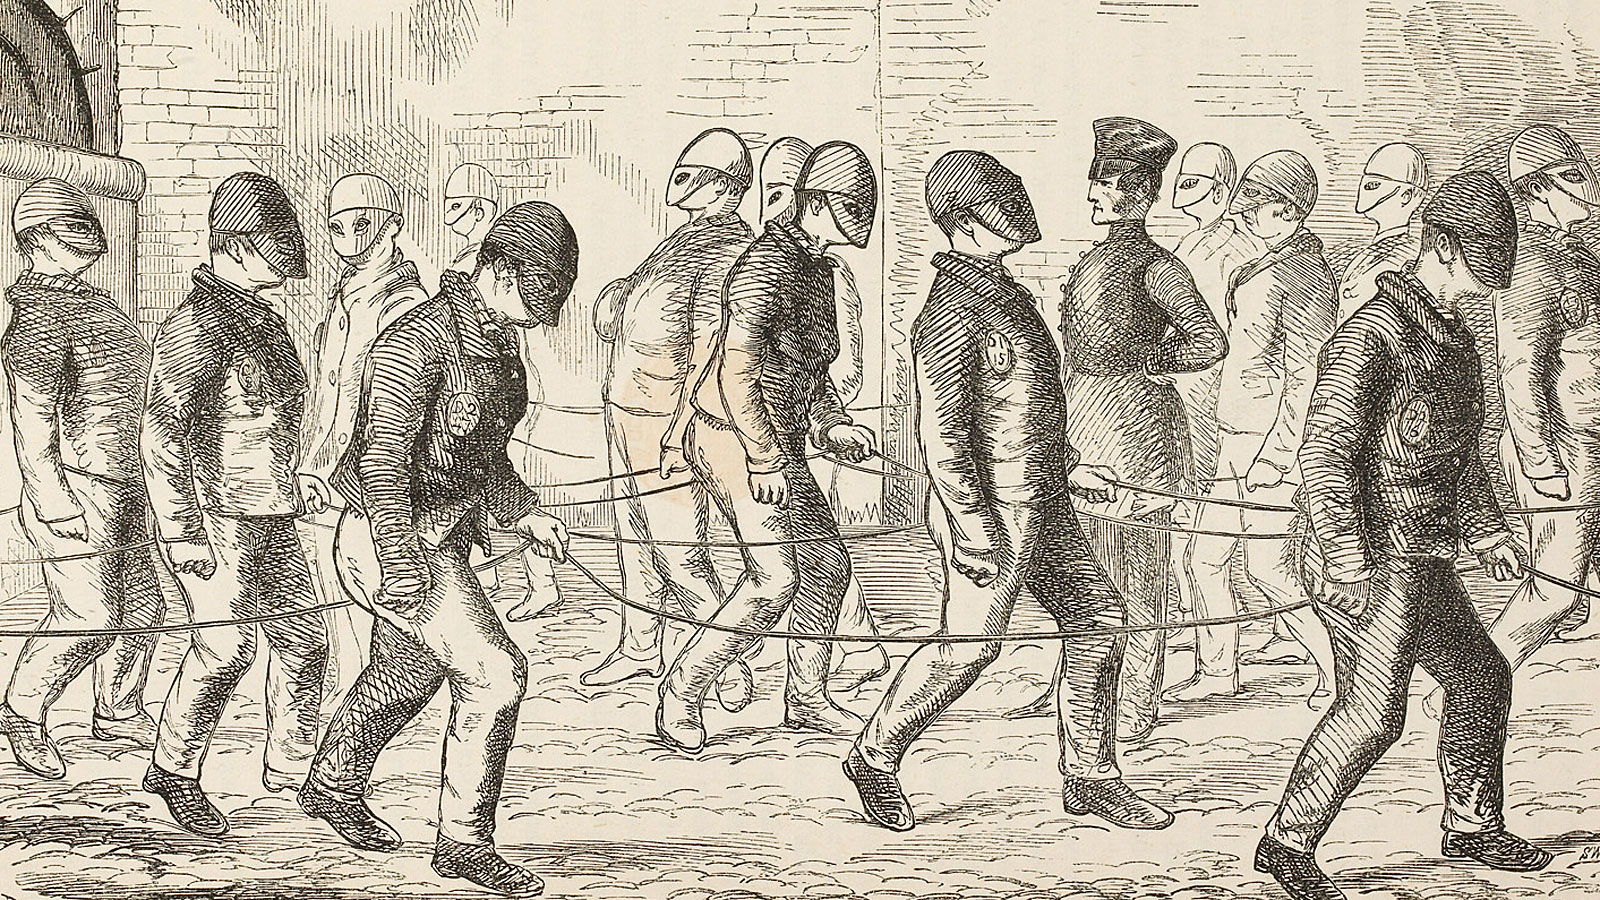 Victorian prisons and punishments - The British Library